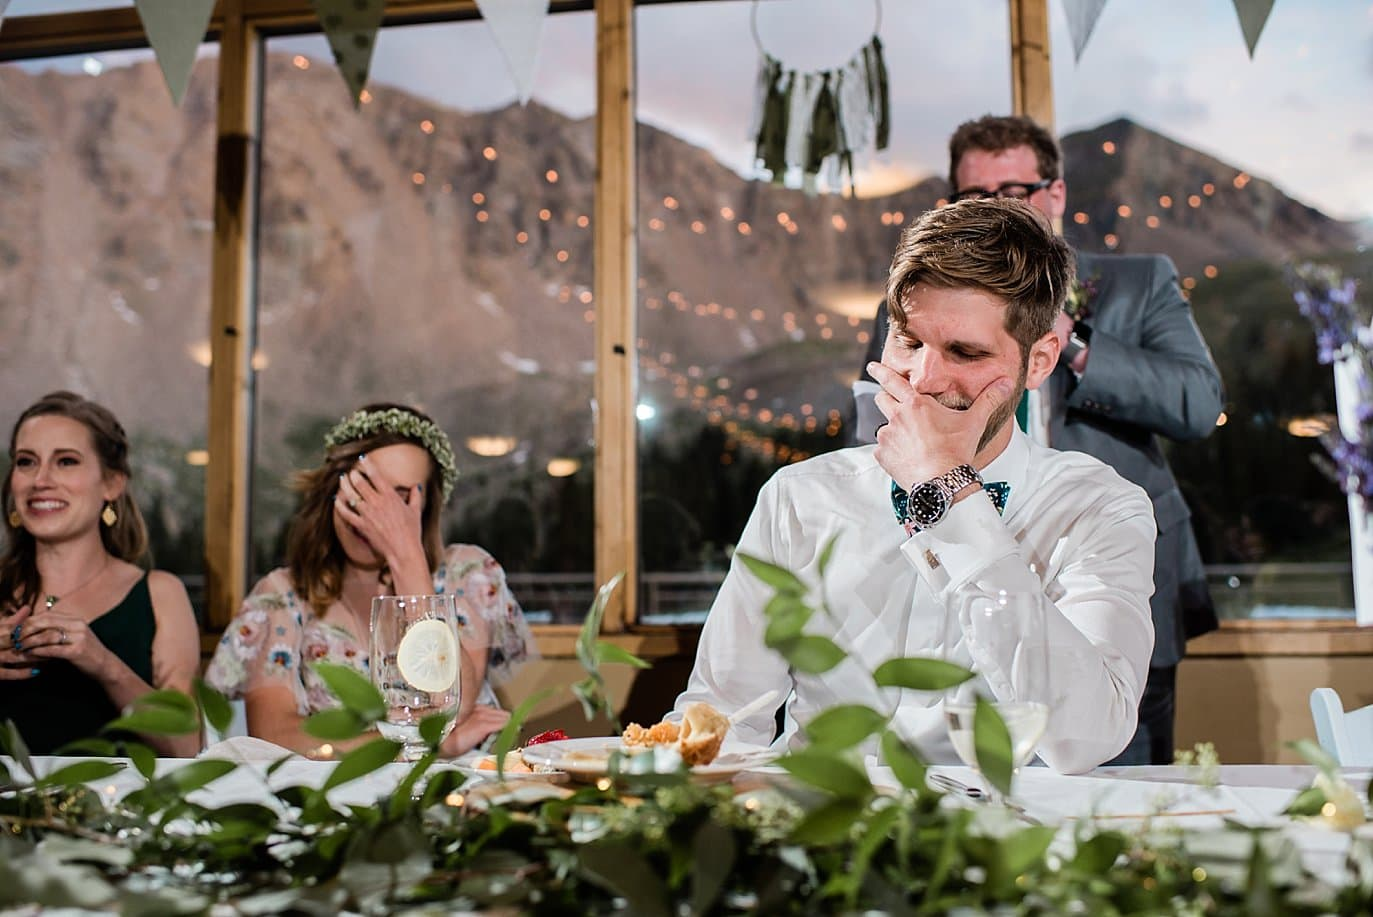 bride and groom get roasted during wedding reception at Black Mountain lodge wedding by Keystone wedding photographer Jennie Crate Photographer